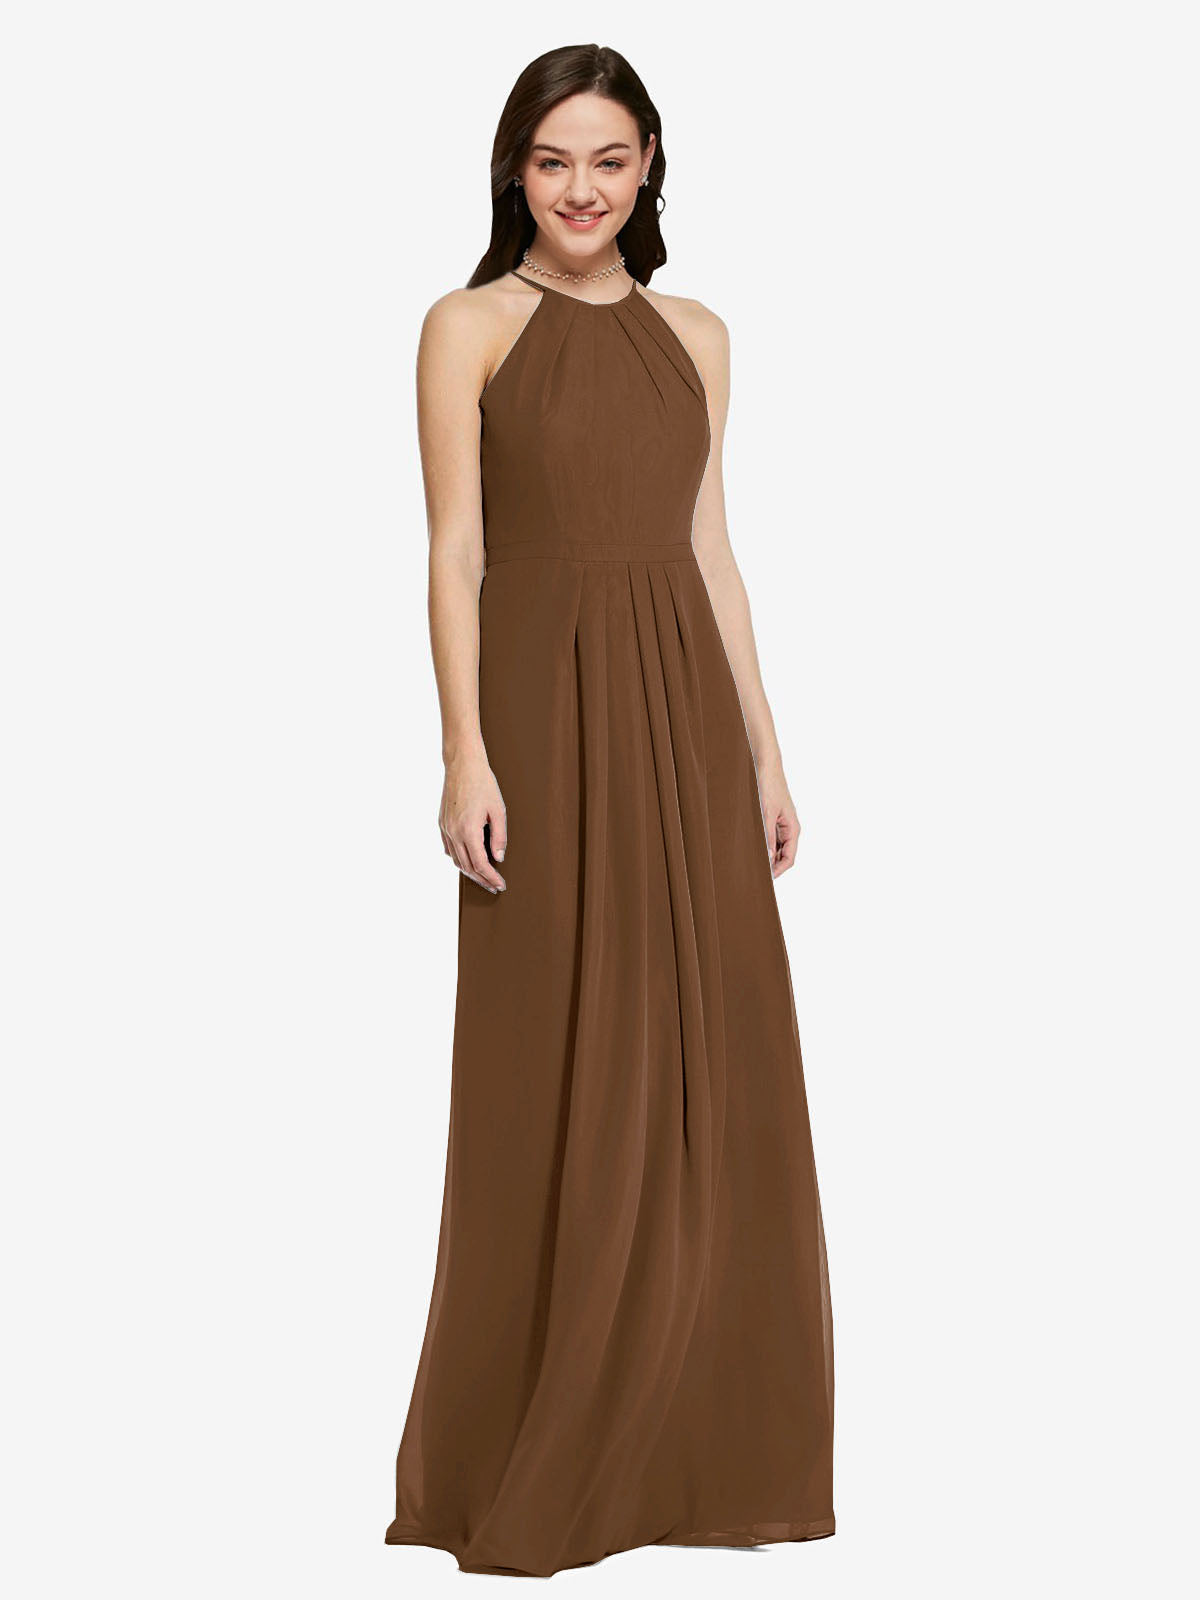 Long Sheath High Neck Halter Sleeveless Brown Chiffon Bridesmaid Dress Koloti